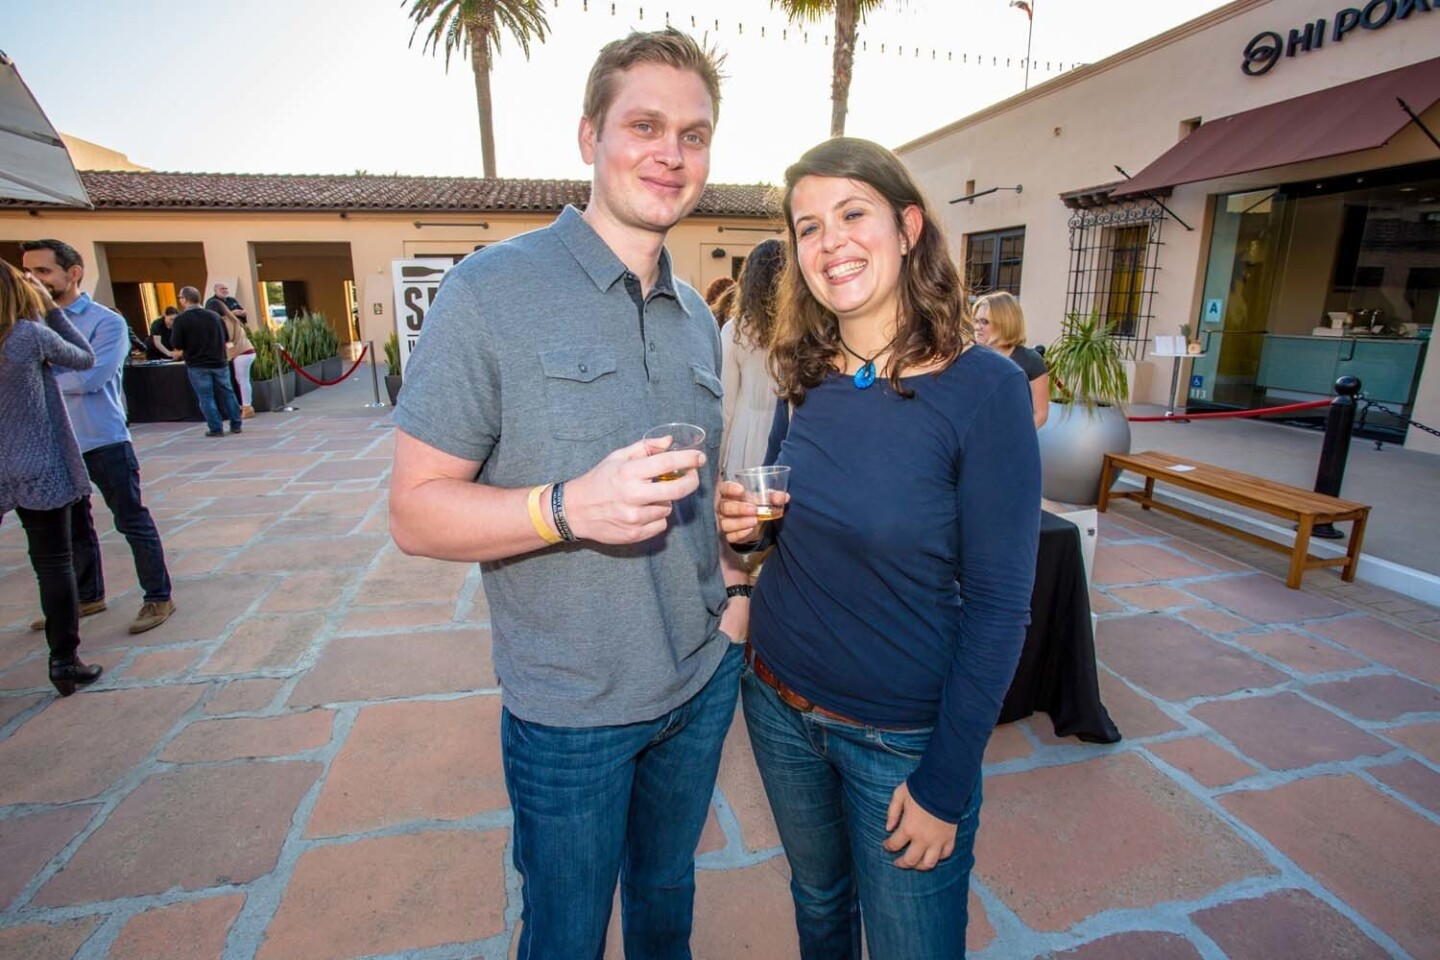 Some of San Diego's best urban wineries showed out for Sip the City, a kick-off event for San Diego Urban Wine Week, on Thursday, June 2, 2017.